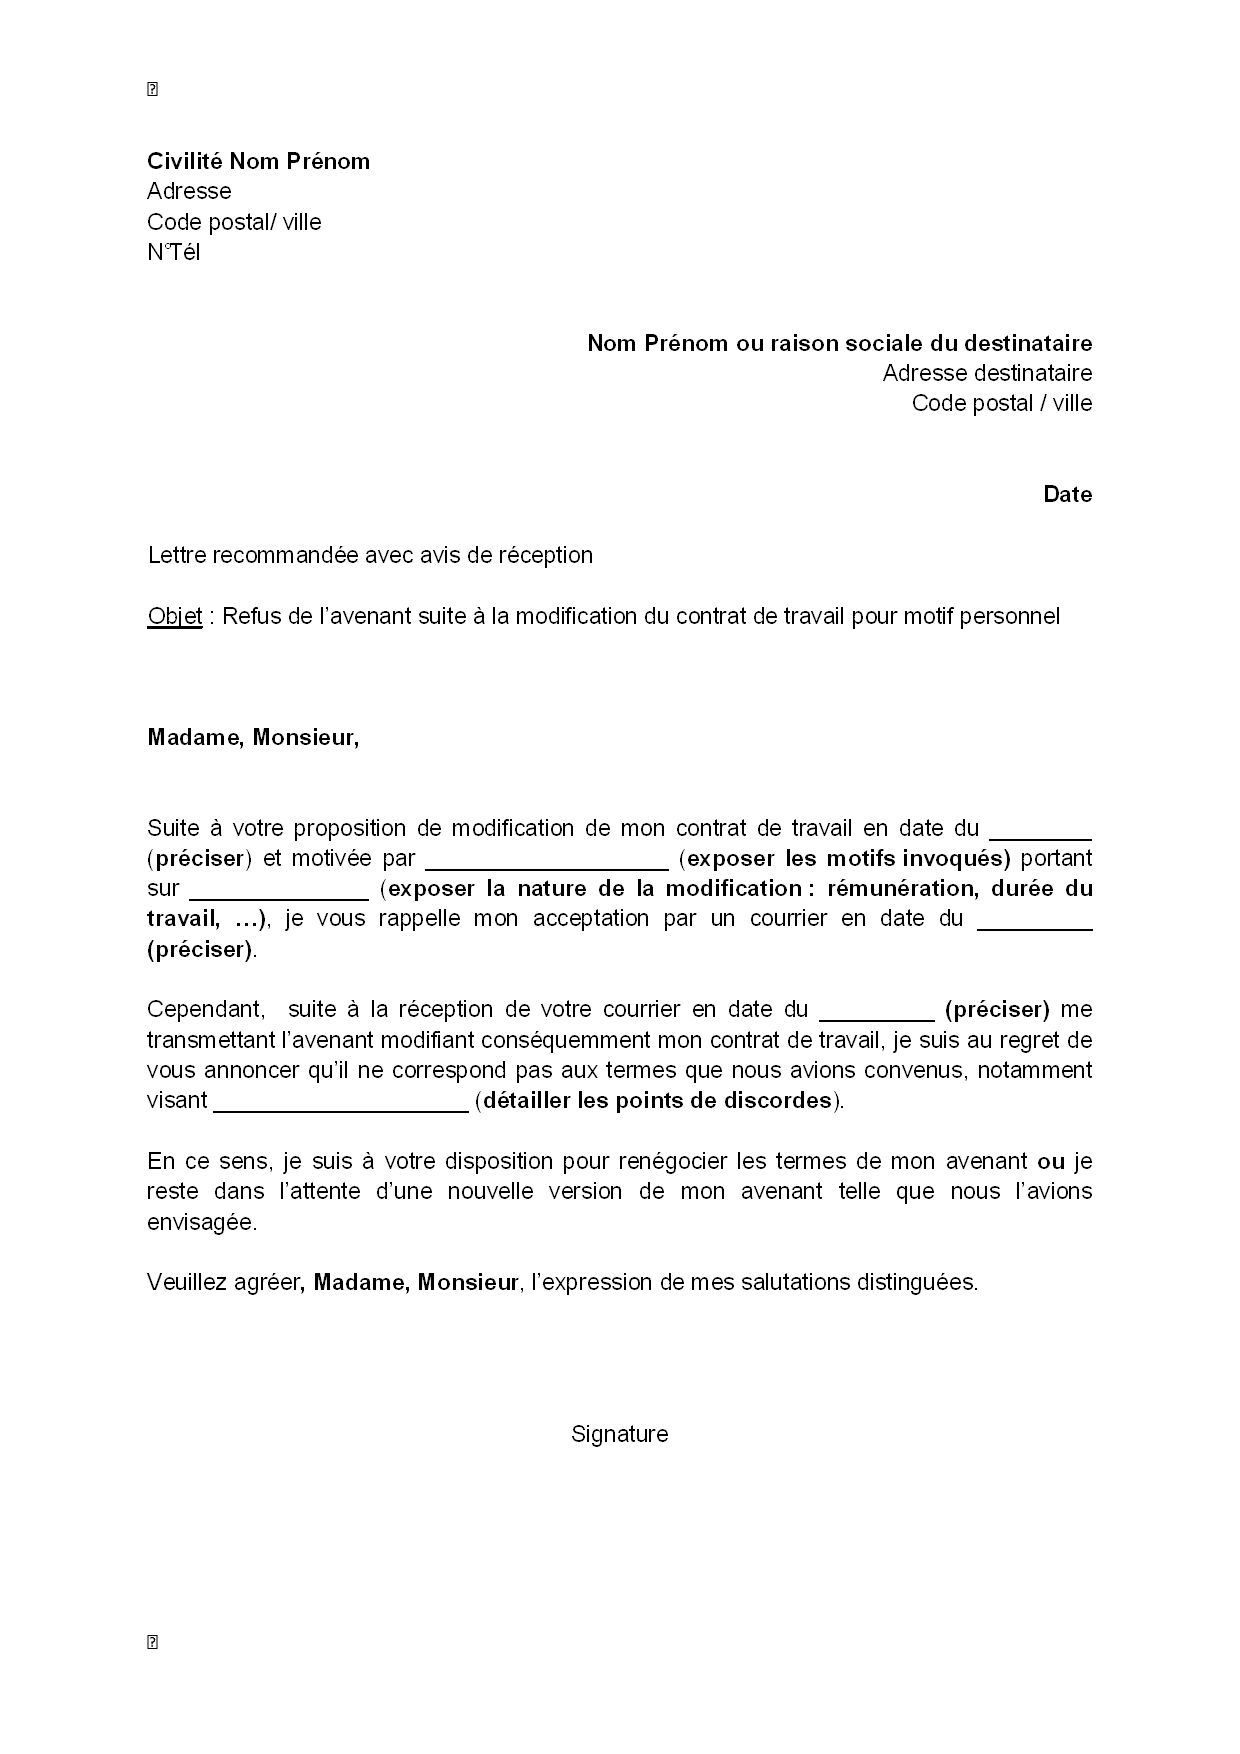 Exemple gratuit de lettre refus par salari avenant suite modification co - Refus location appartement ...